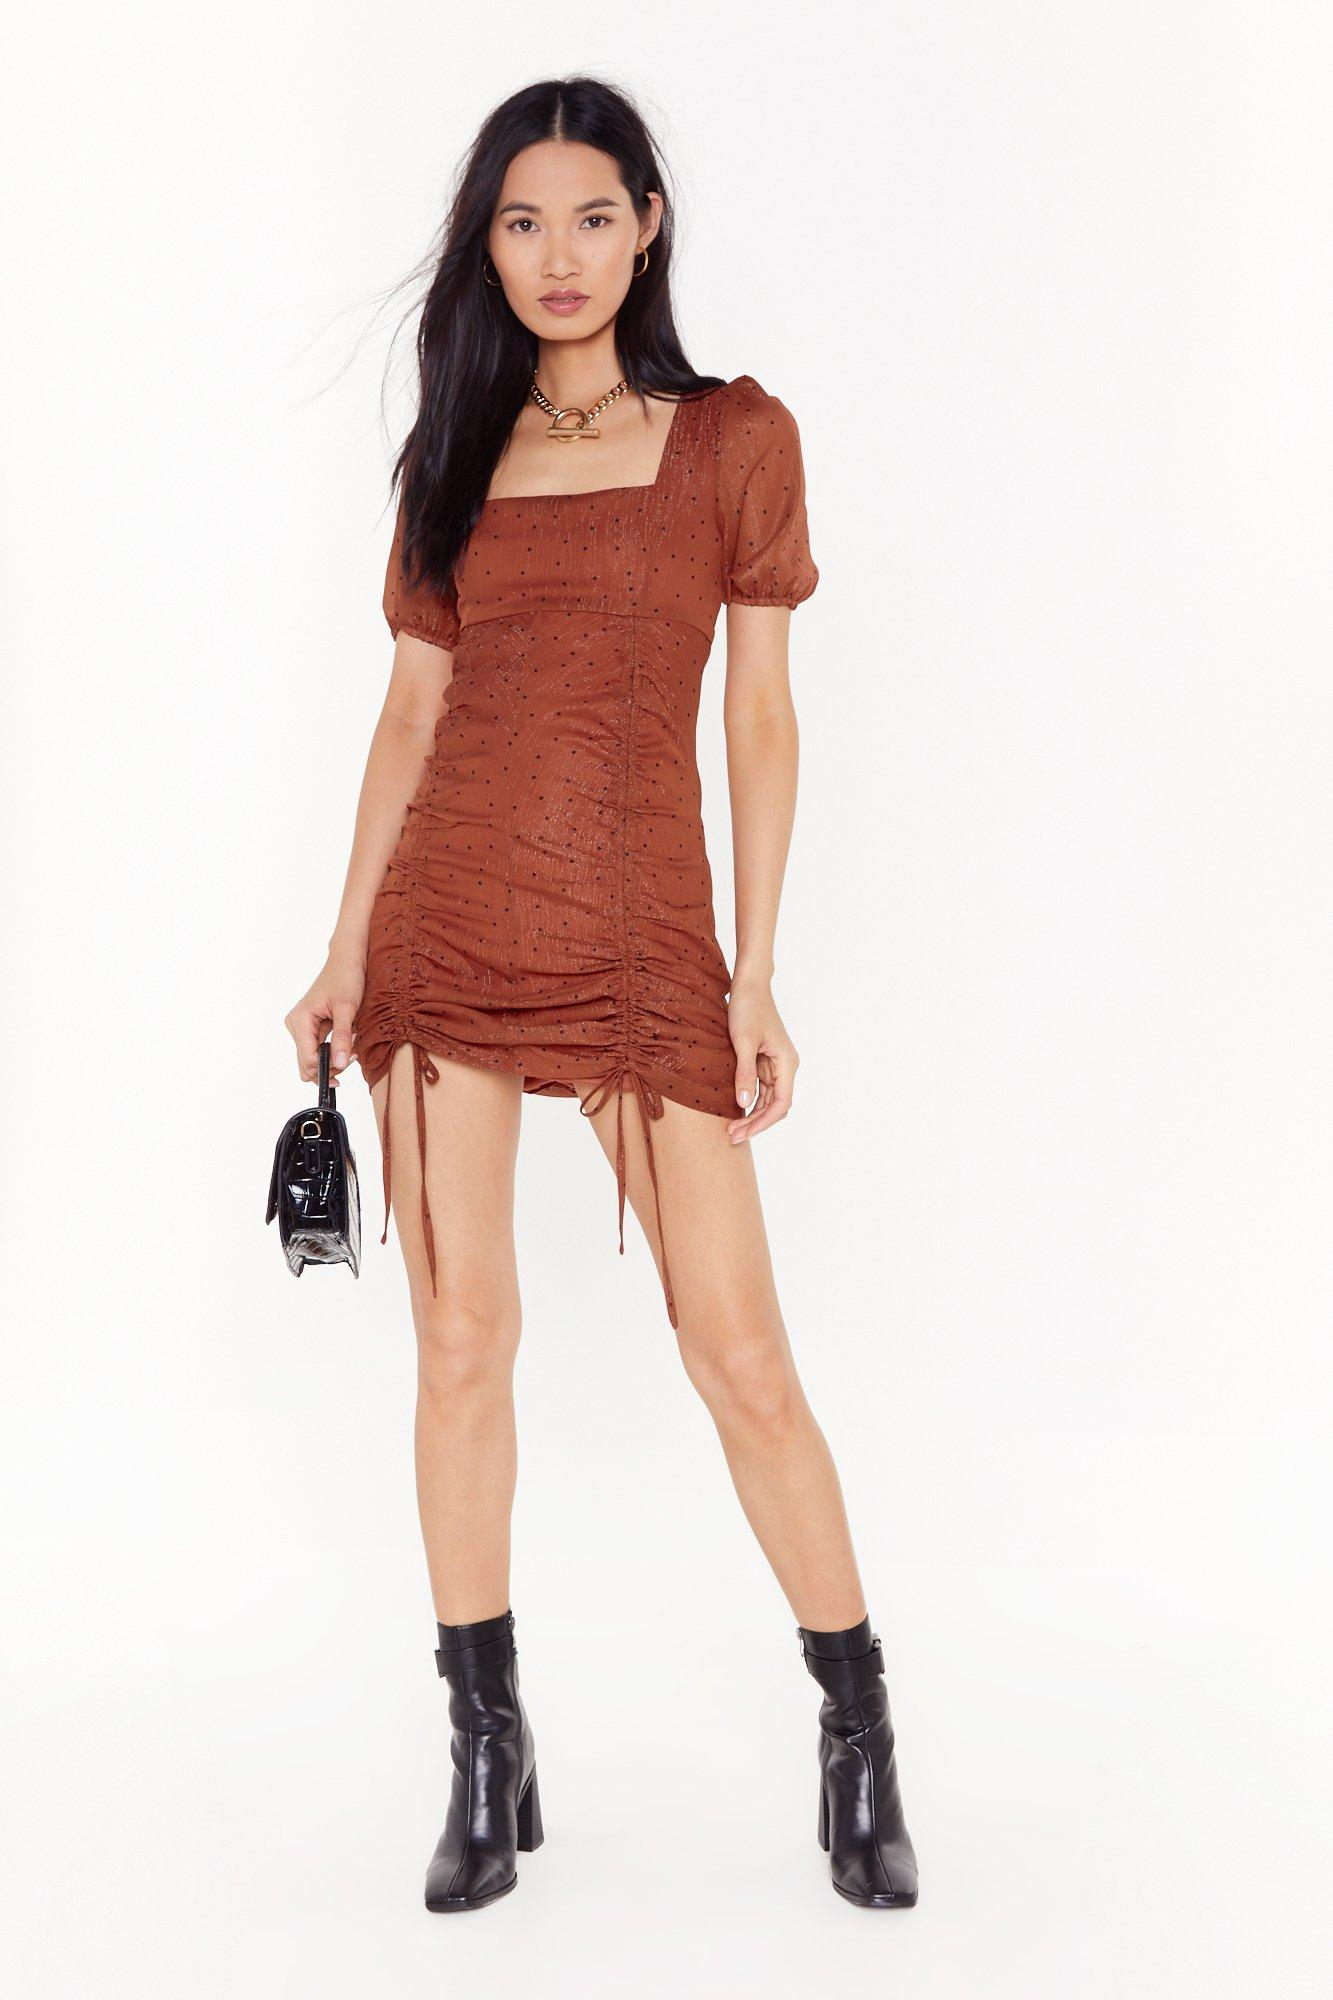 Image of Caught Me in It's Spotlight Ruched Mini Dress